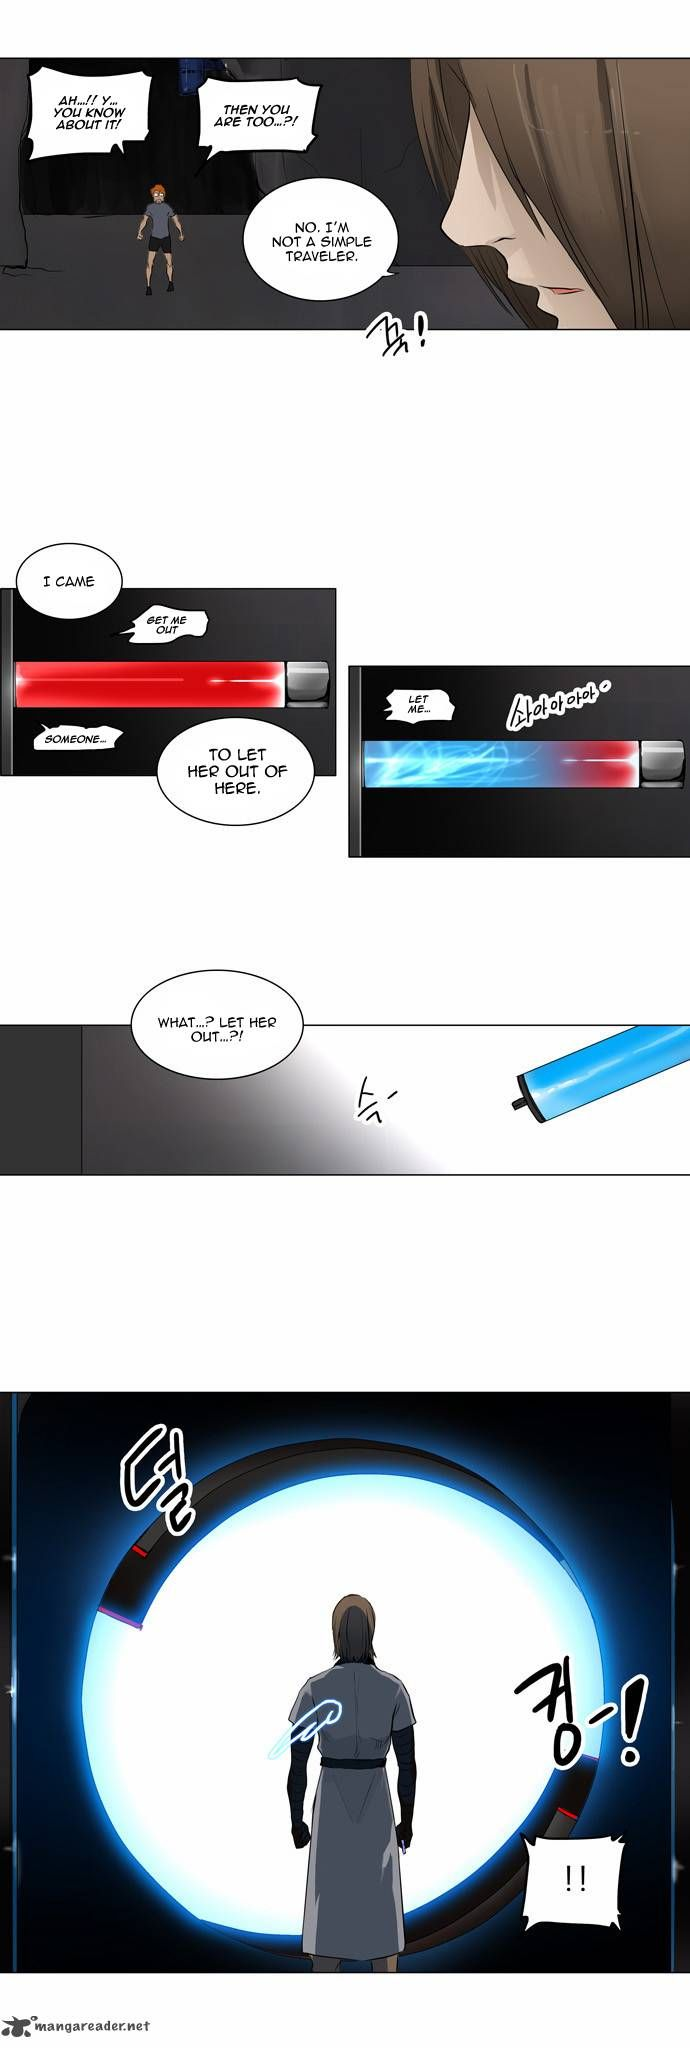 Tower of God 182 Page 2